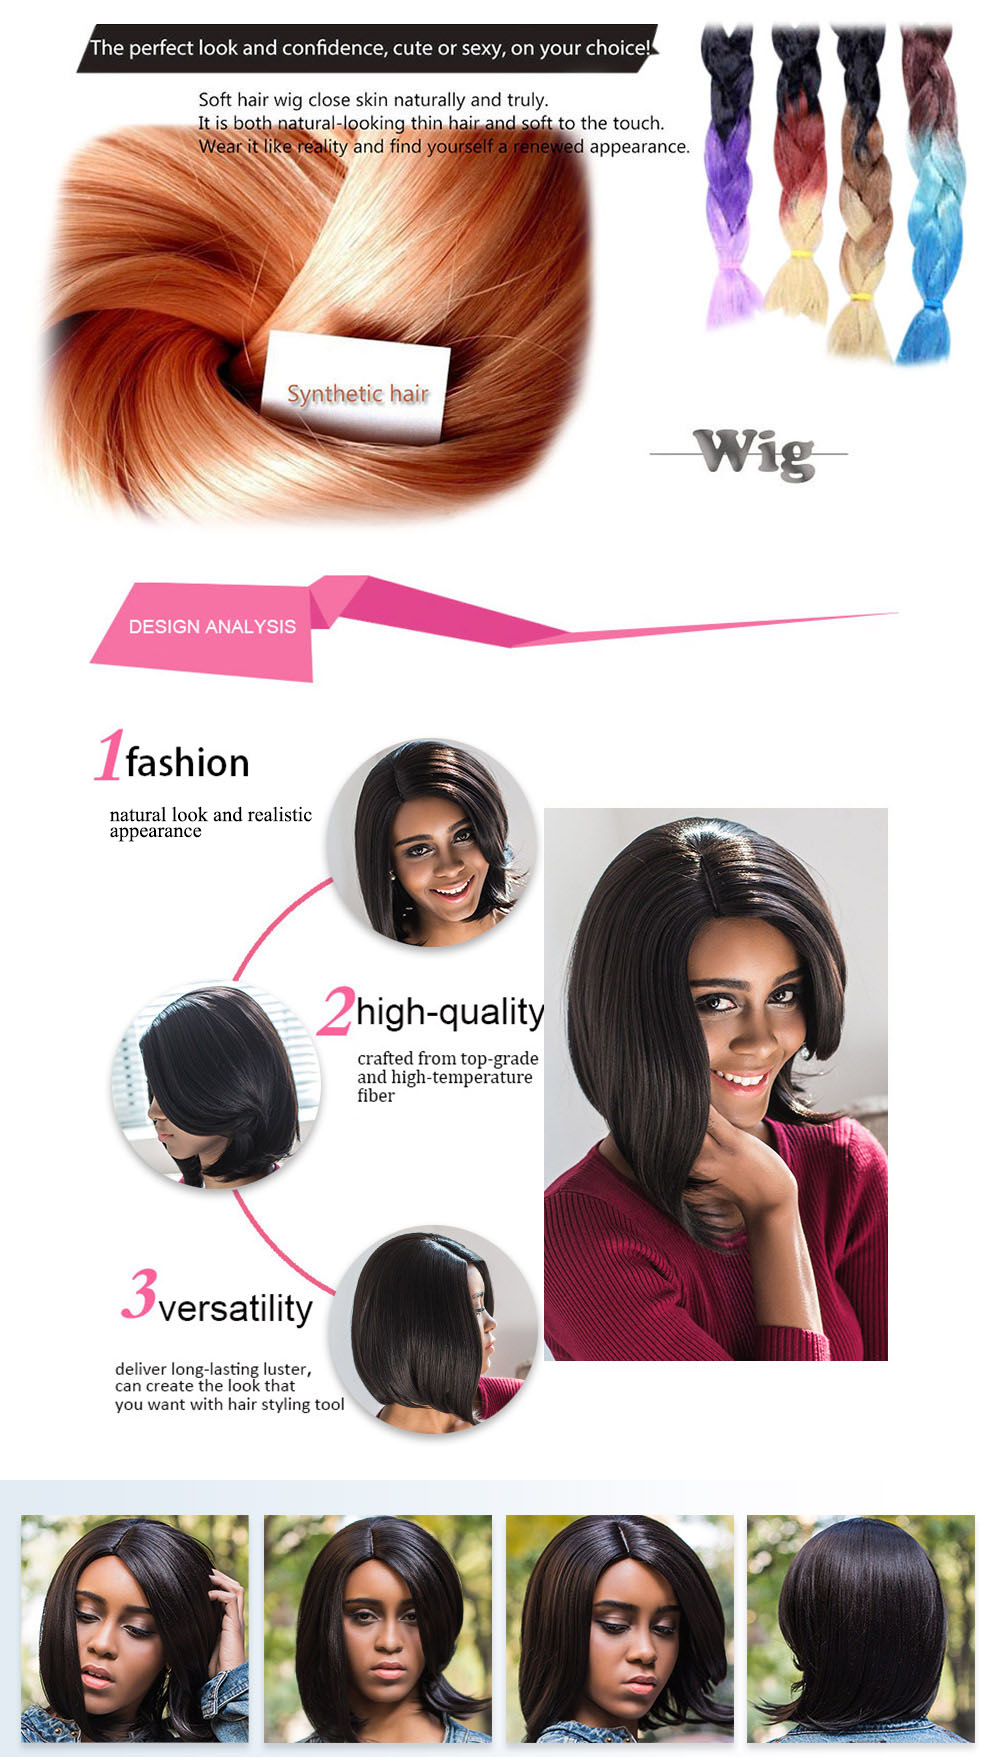 AISIHAIR Stylish Side Parting Short Asymmetrical Slightly Wavy Synthetic Wigs for Women